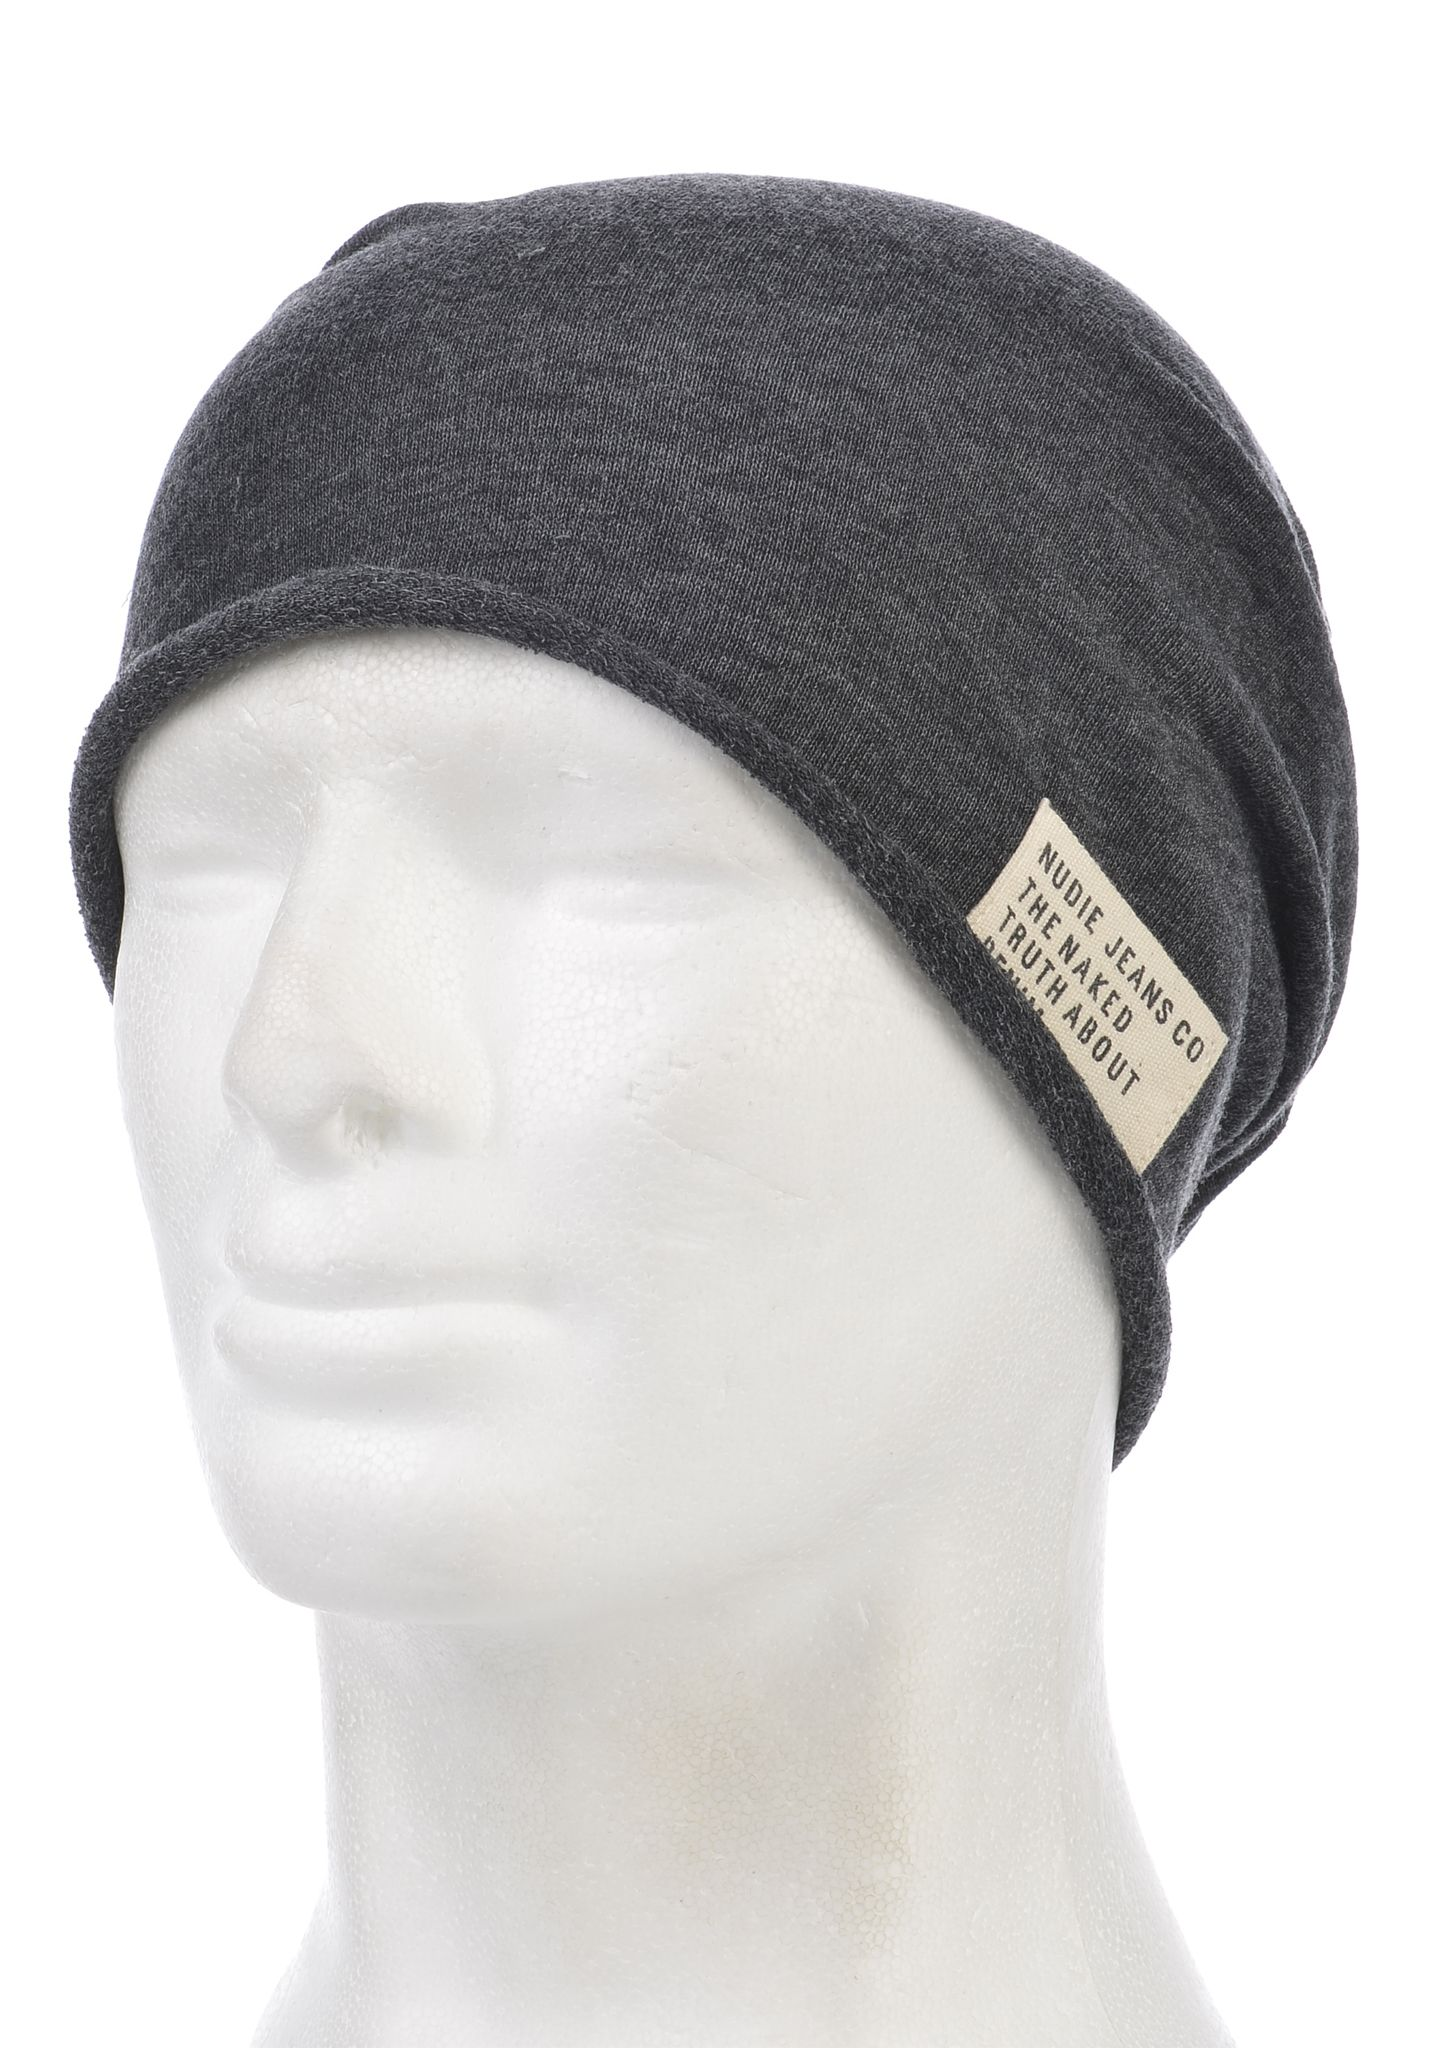 NUDIE JEANS Luigisson - Beanie for Men - Black - Planet Sports 9a3763d3f260